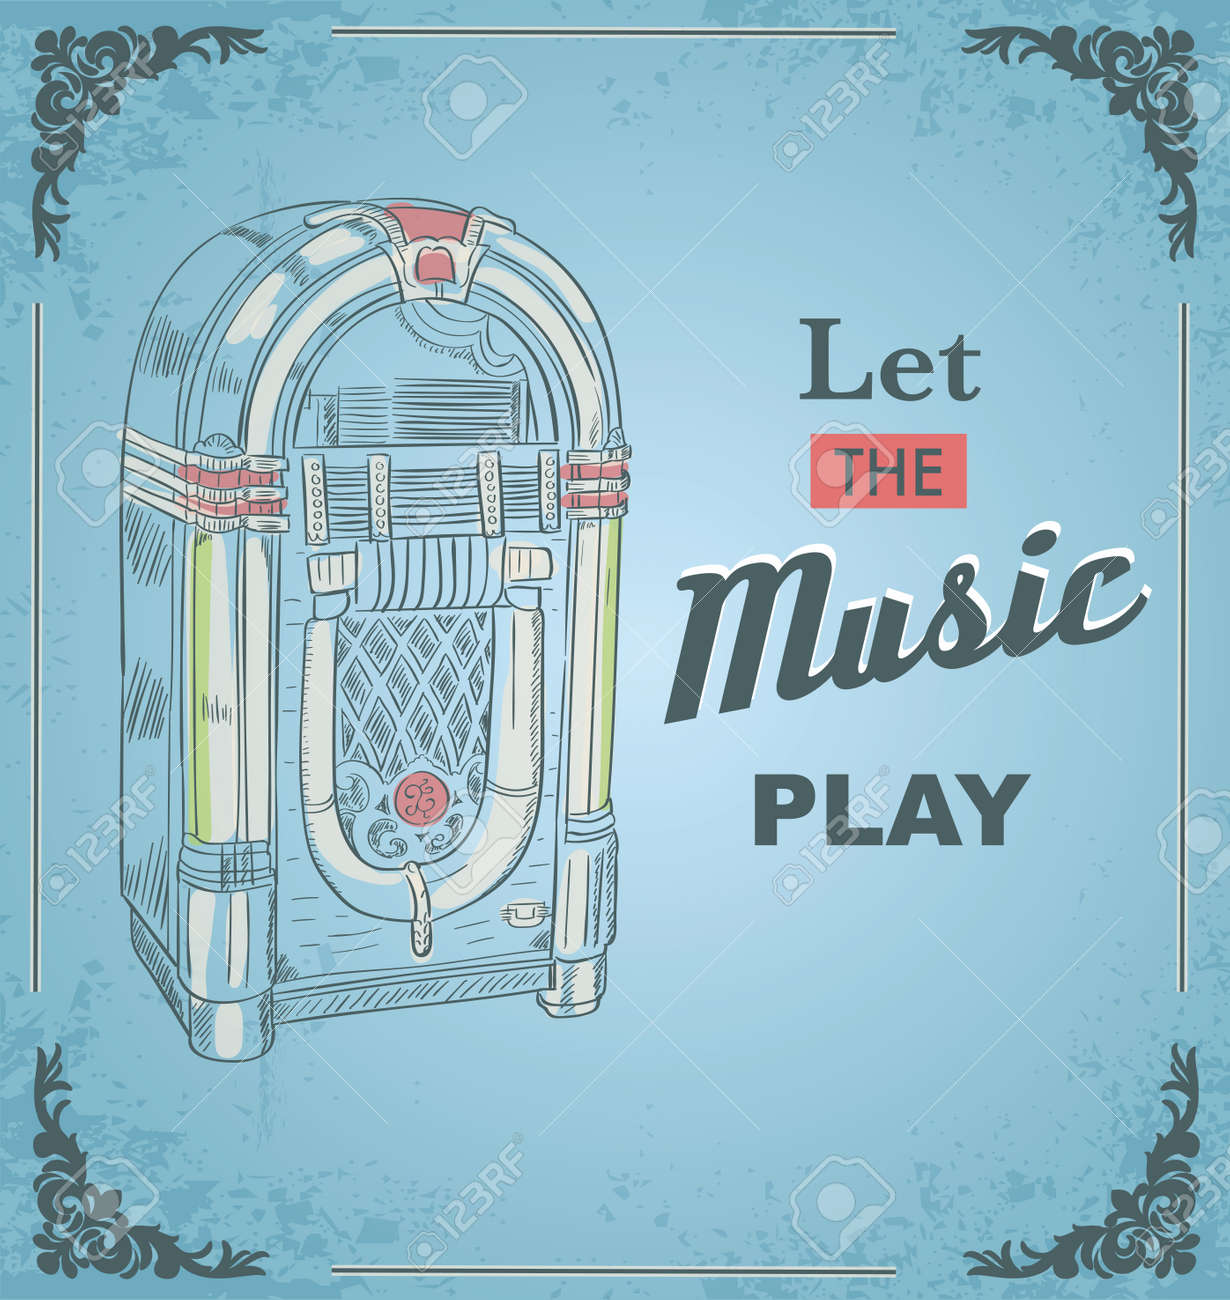 Vector illustration of retro jukebox. Quote Let the music play. Retro and vintage poster. Print for posters. - 76670371